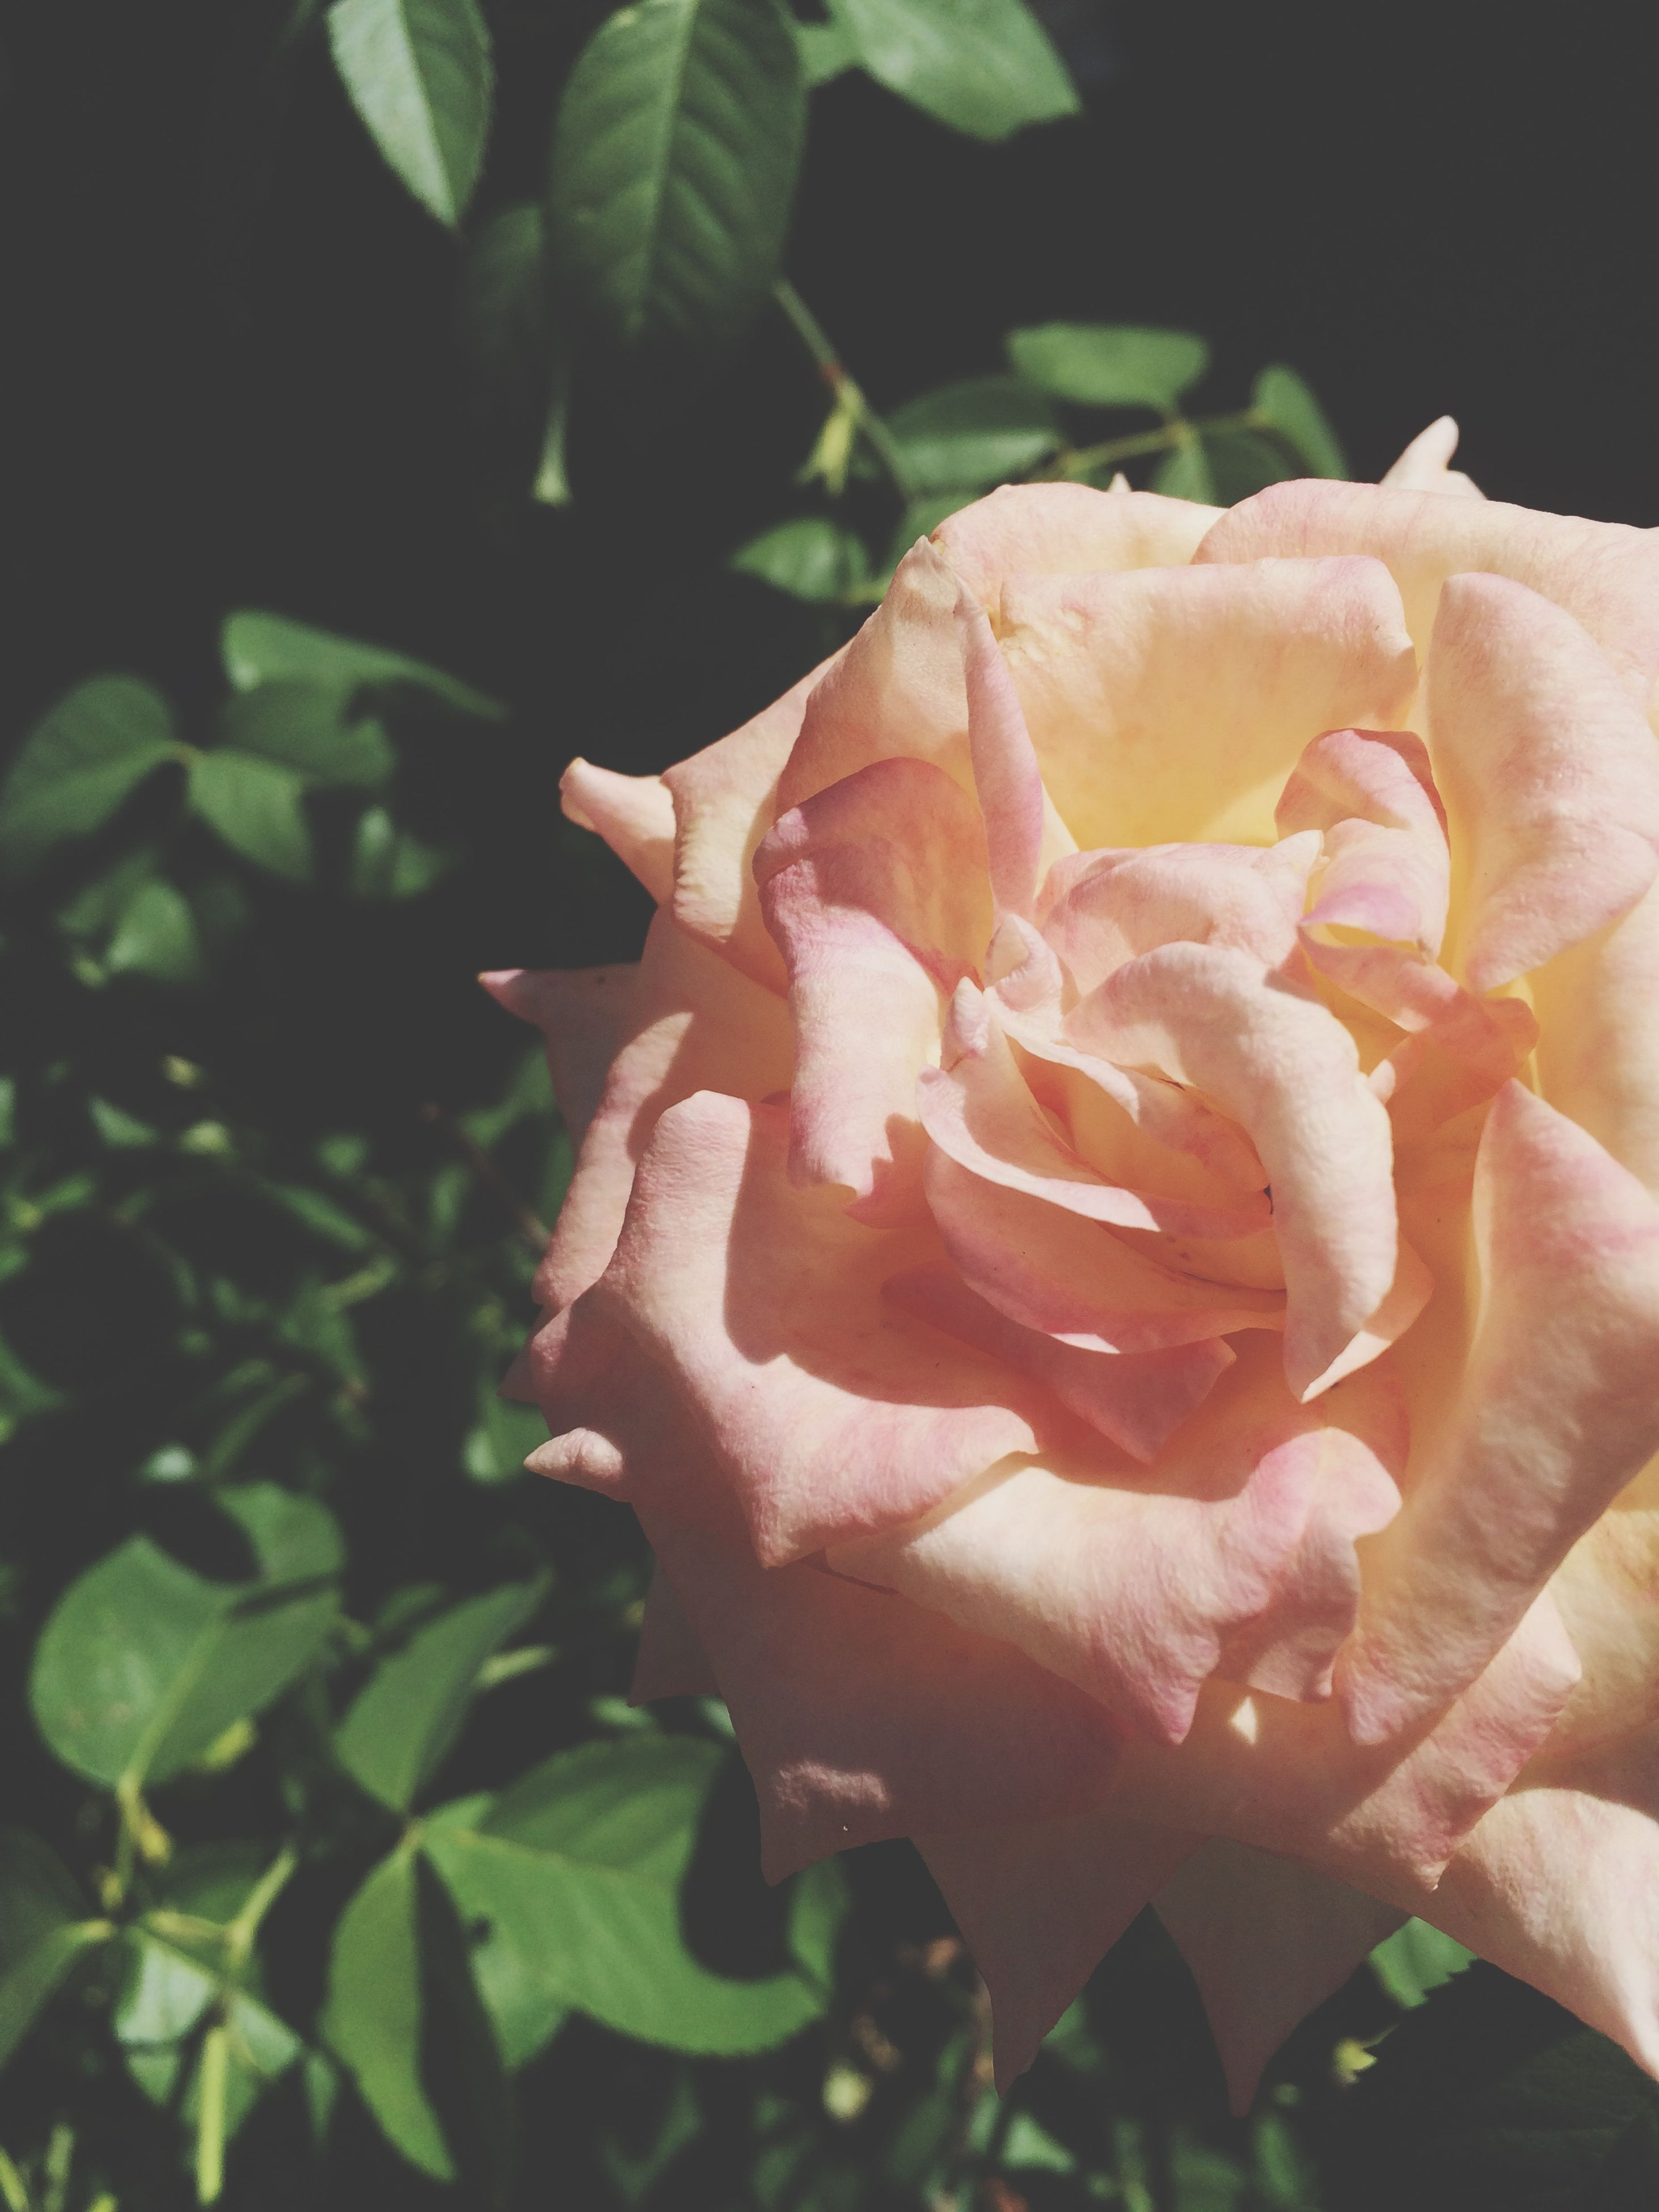 flower, petal, freshness, flower head, rose - flower, fragility, close-up, beauty in nature, growth, single flower, blooming, nature, pink color, plant, rose, focus on foreground, drop, leaf, in bloom, single rose